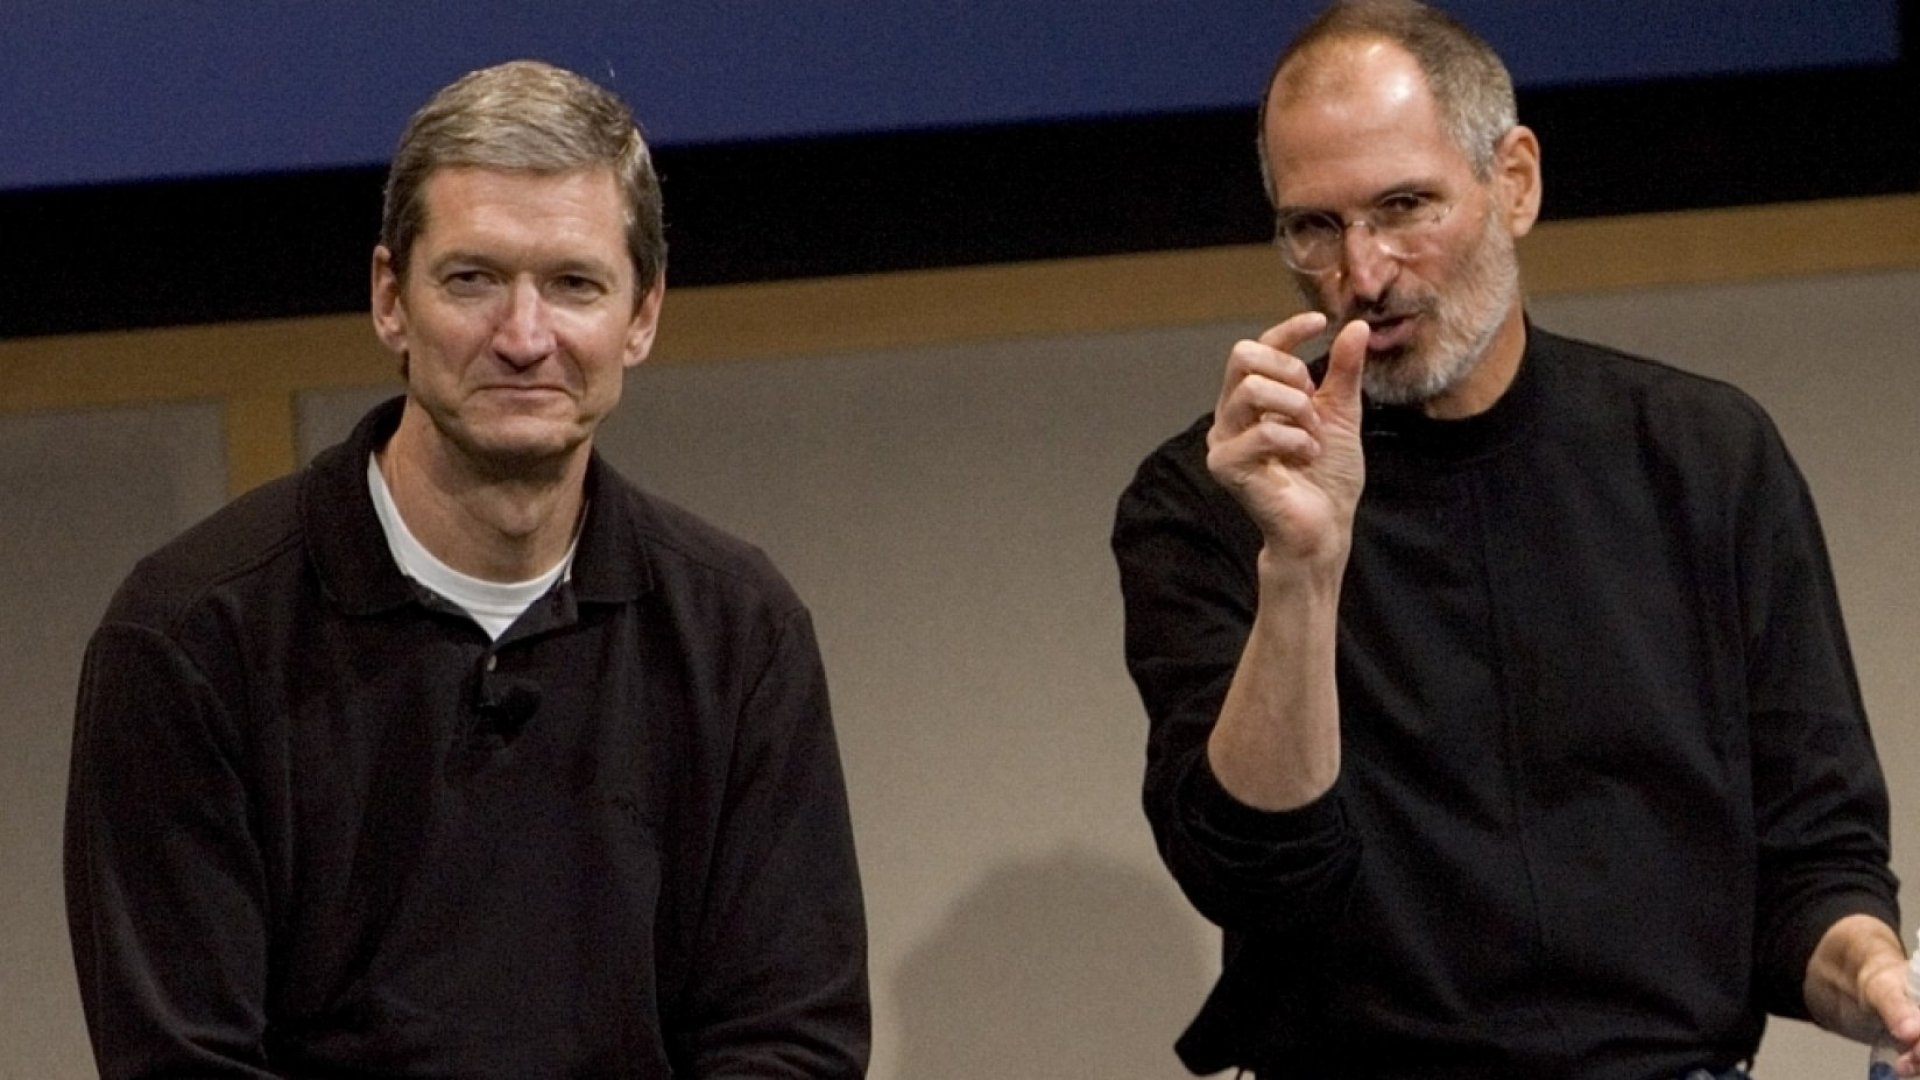 Tim Cook Just Revealed That Steve Jobs Convinced Him to Join Near-Bankrupt Apple With 1 Powerful Thought